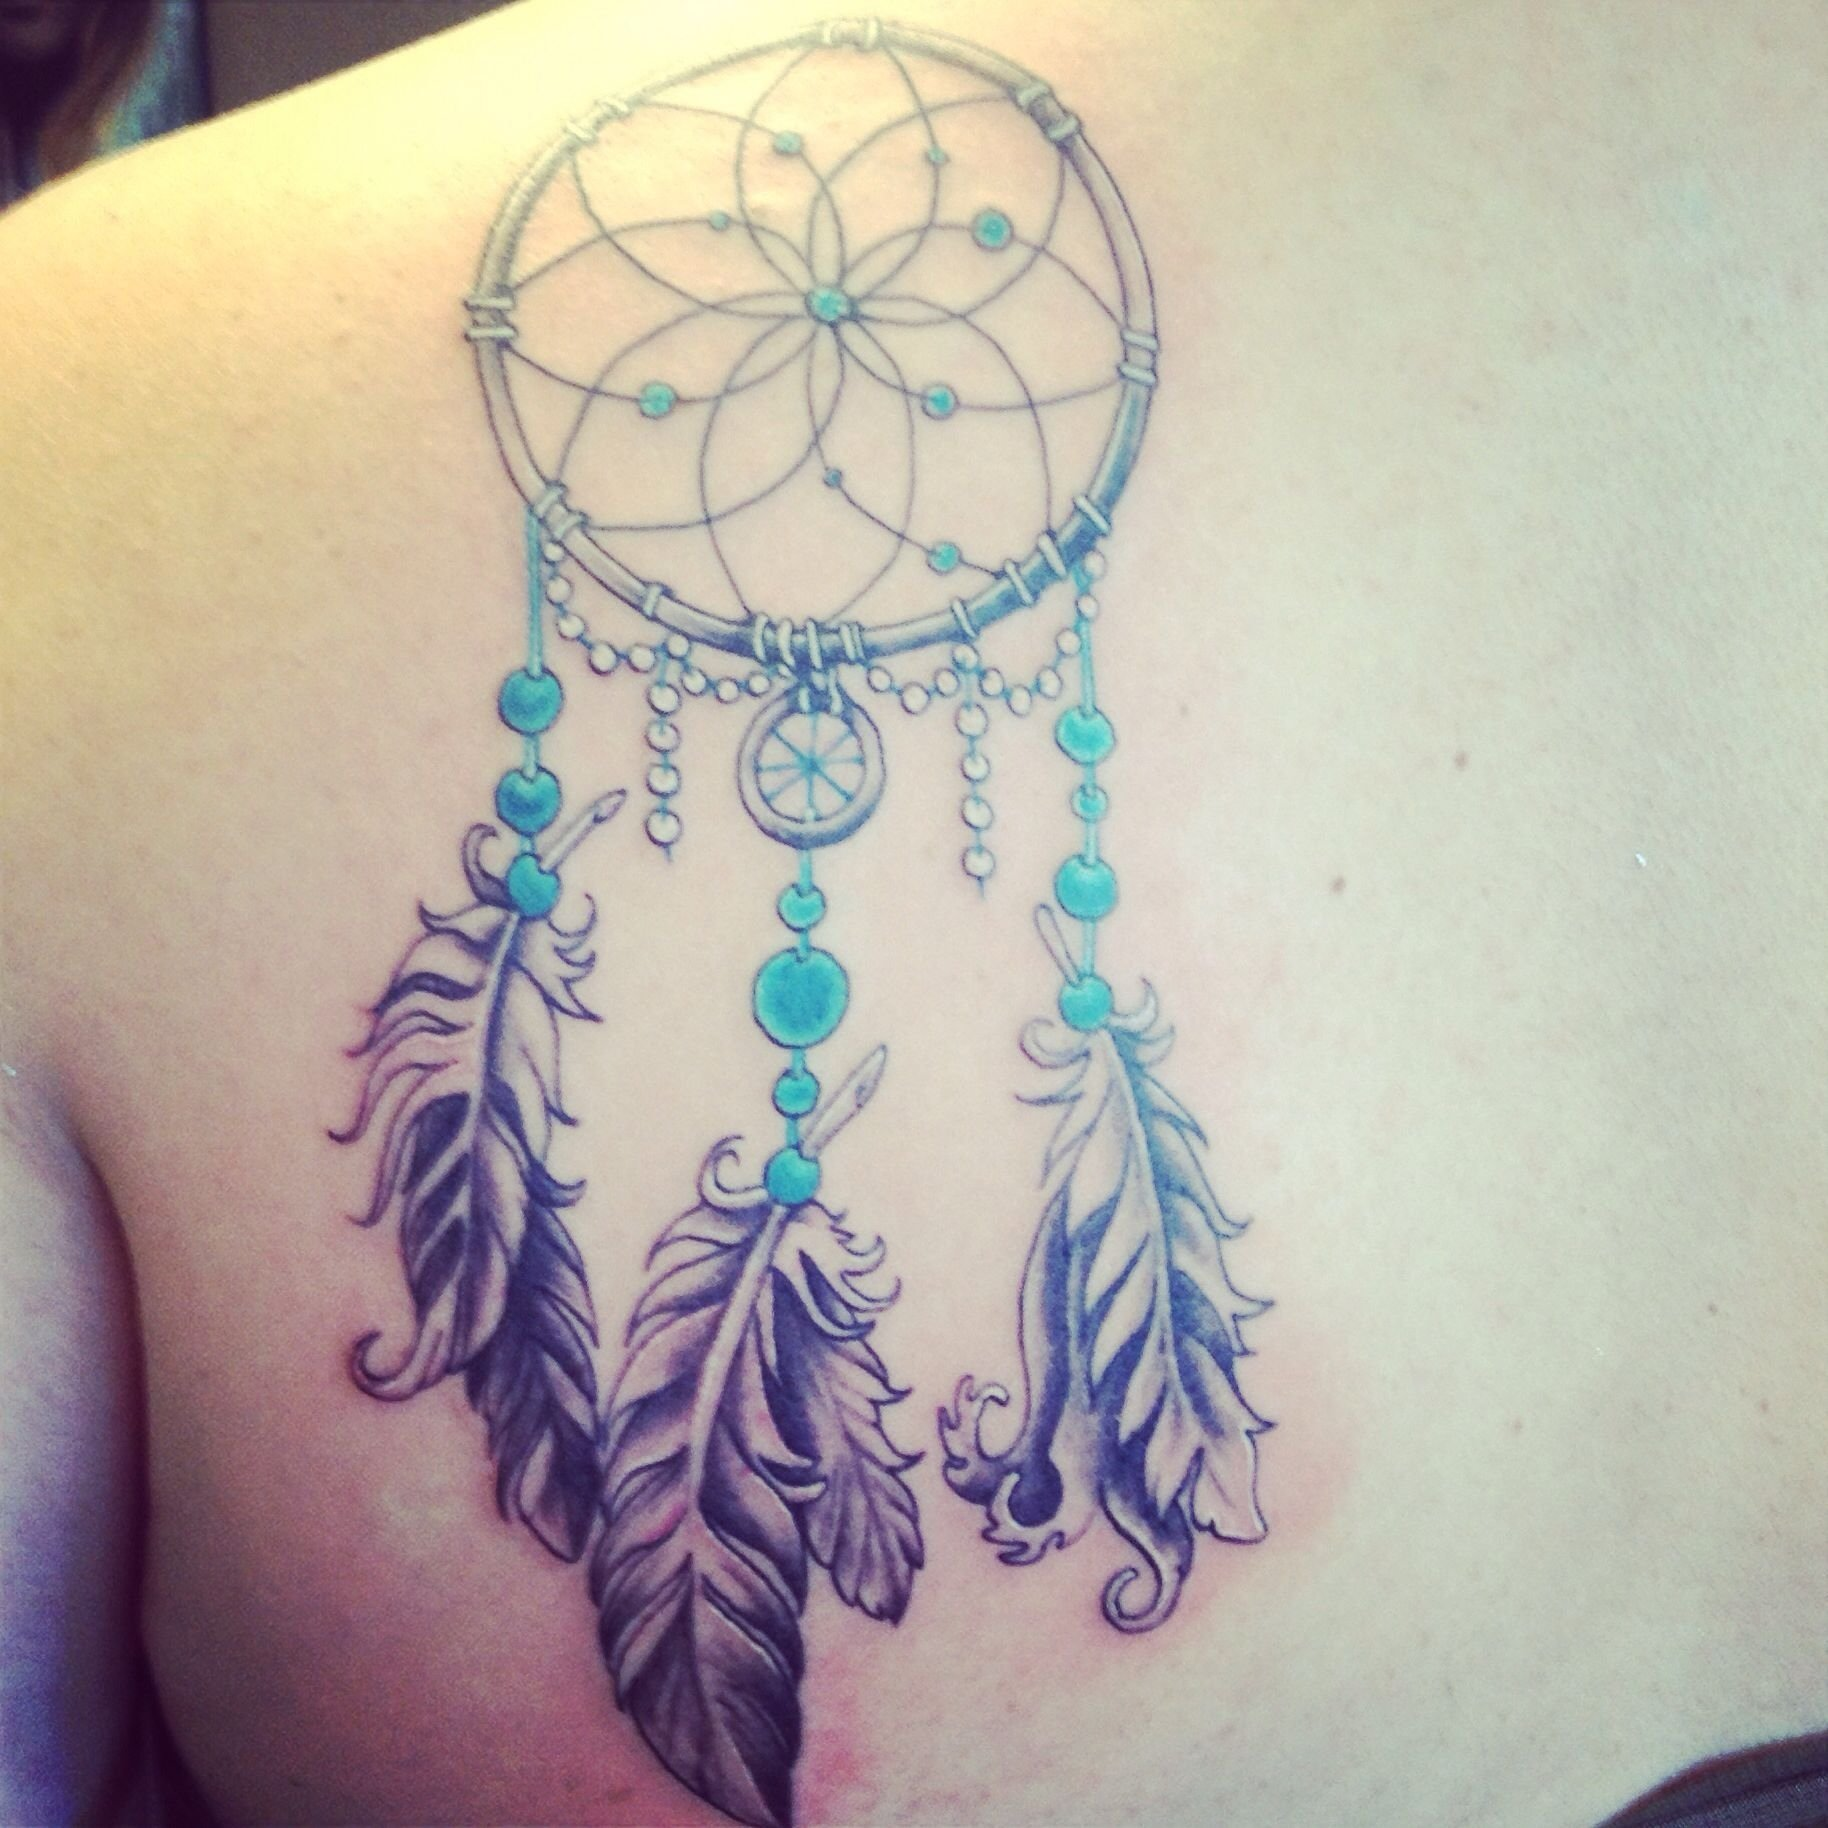 10 Attractive Tattoo Ideas For Shoulder Blade dreamcatcher shoulder blade tattoo tattoos pinterest tattoo 2020